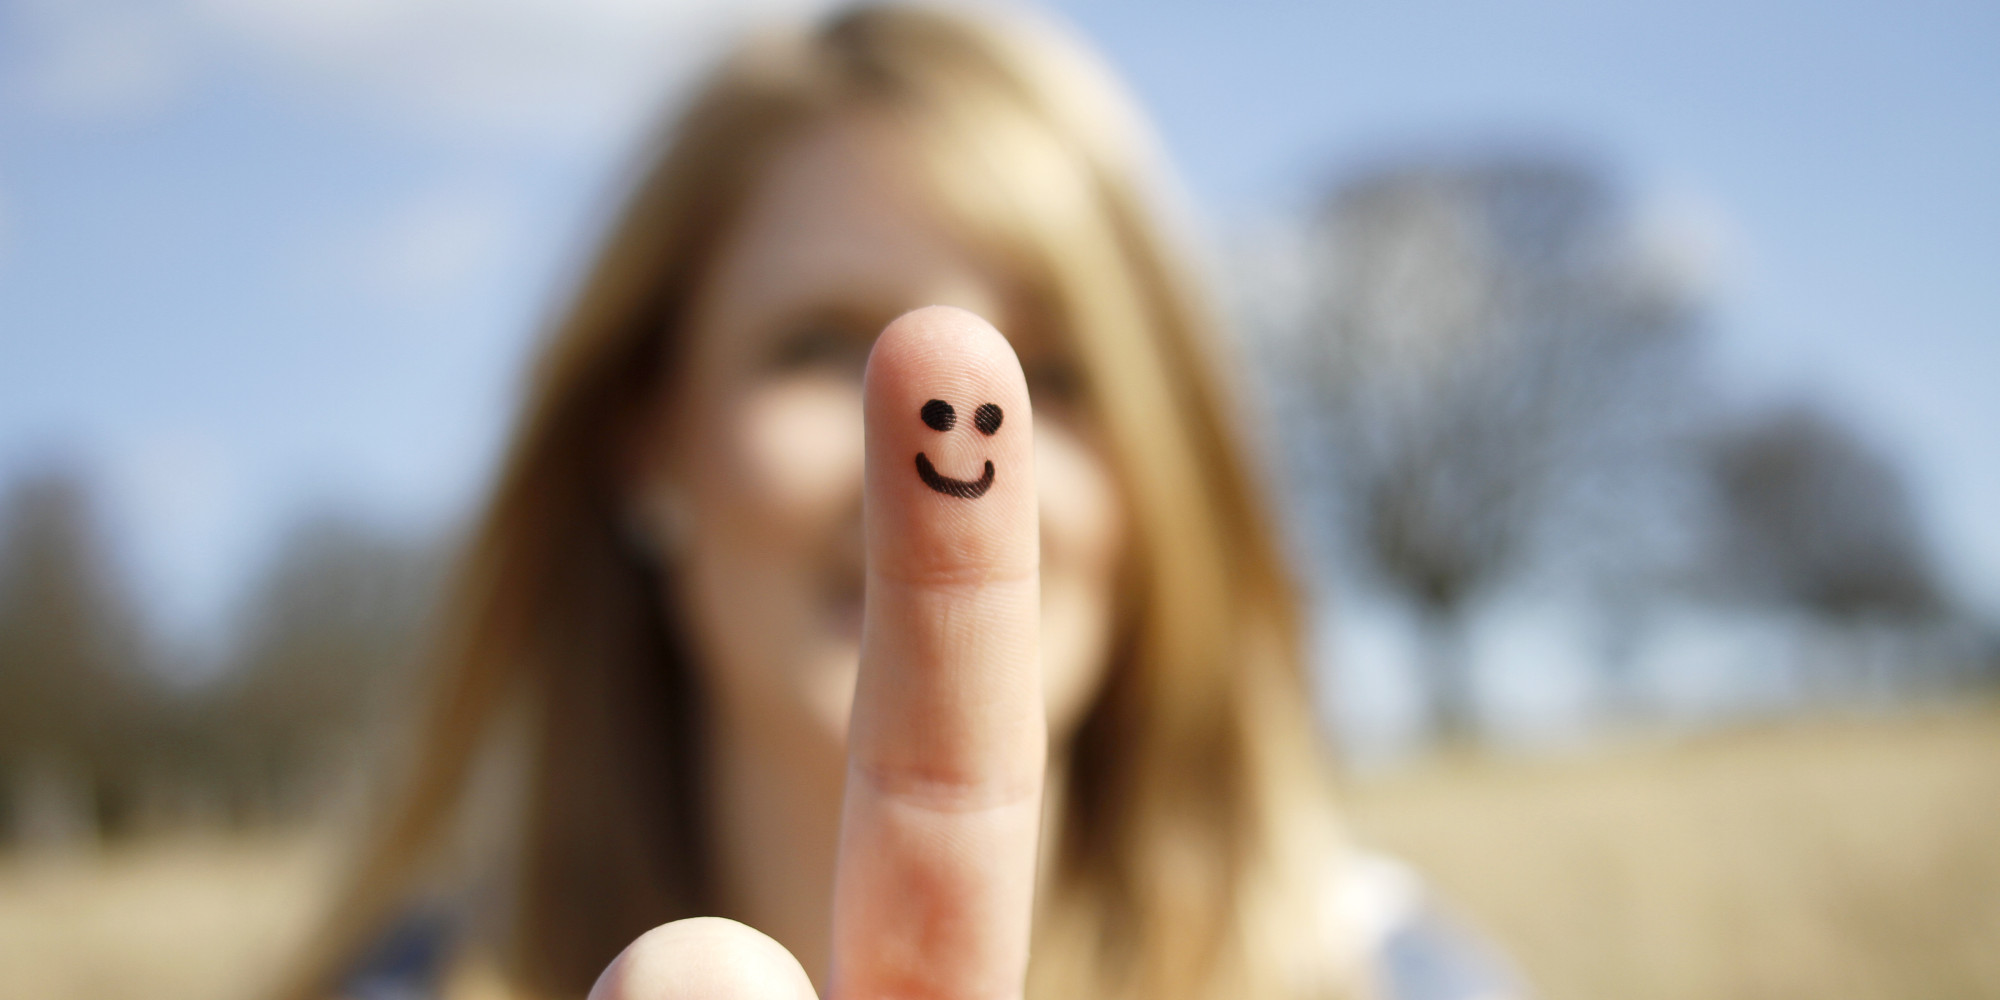 Happy face drawn onto a girl's finger